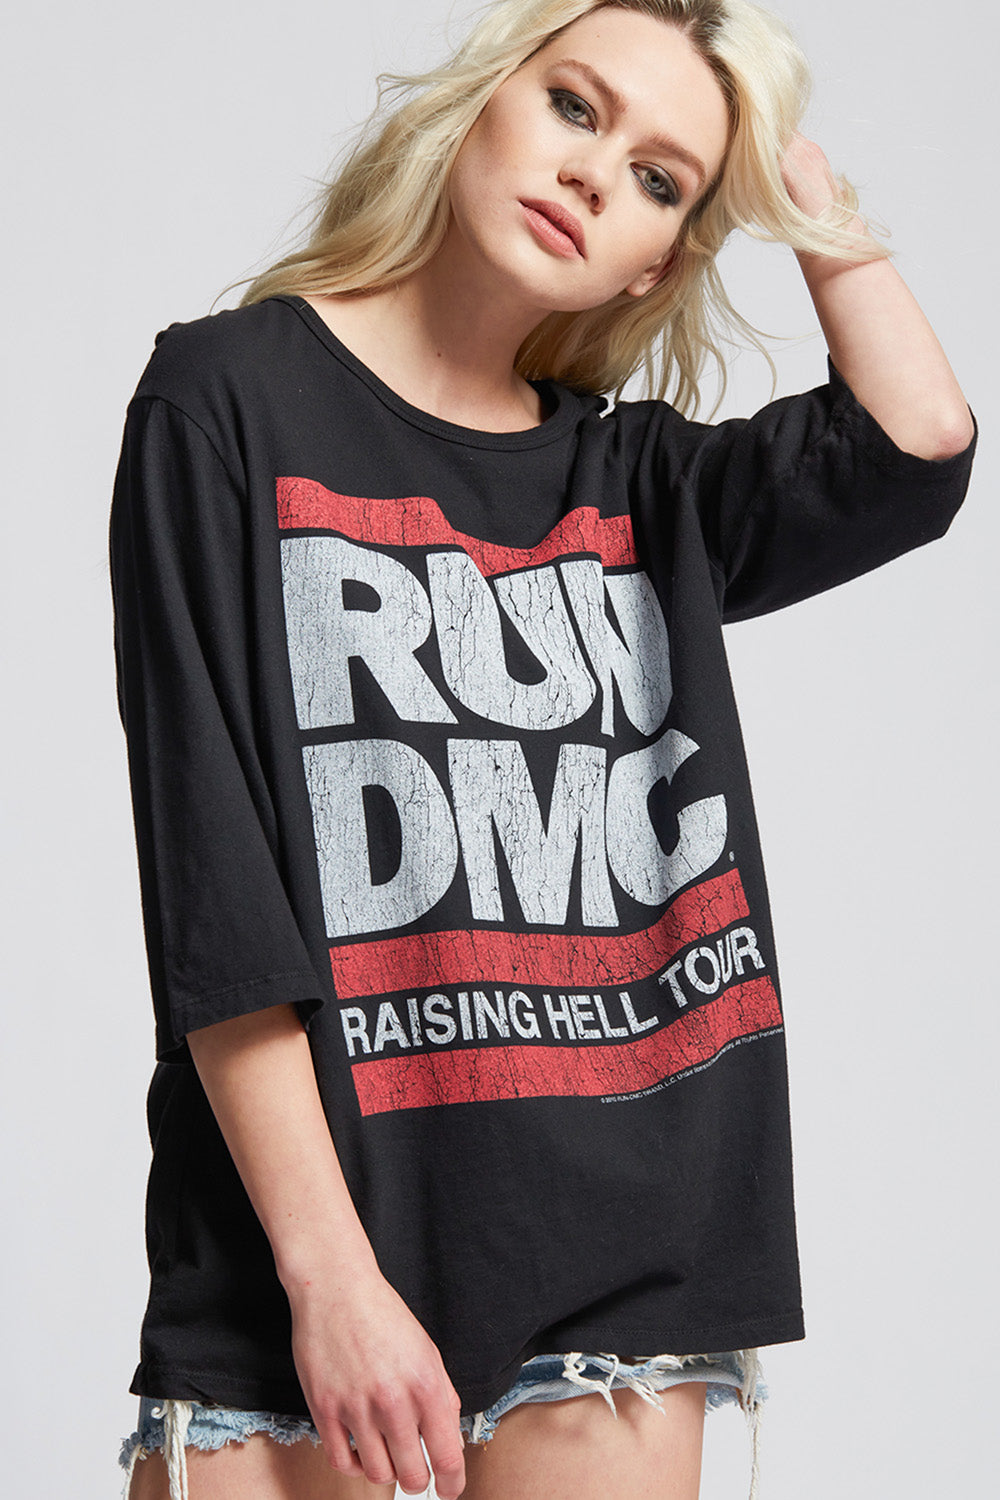 Run-DMC Raising Hell Tour Tee